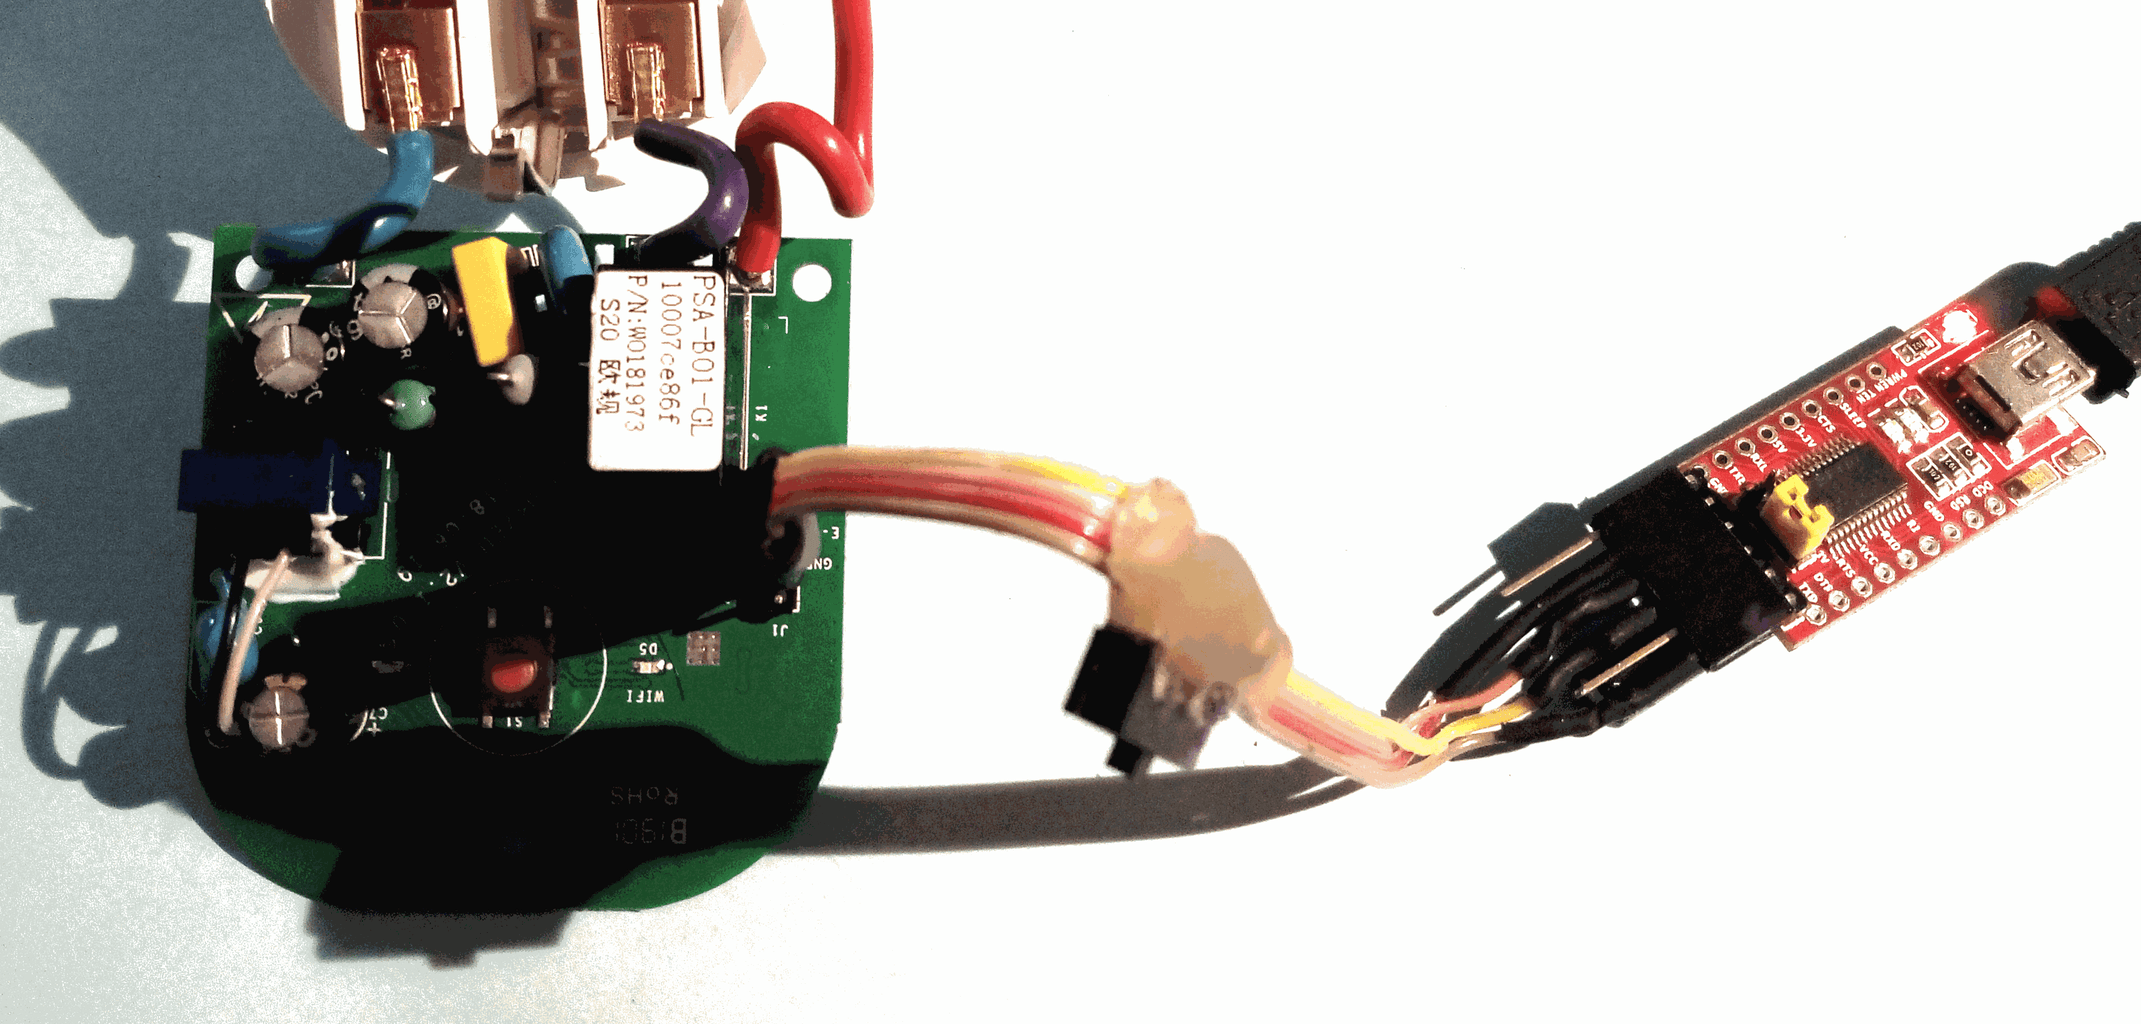 Preparation of Sonoff Switch S20